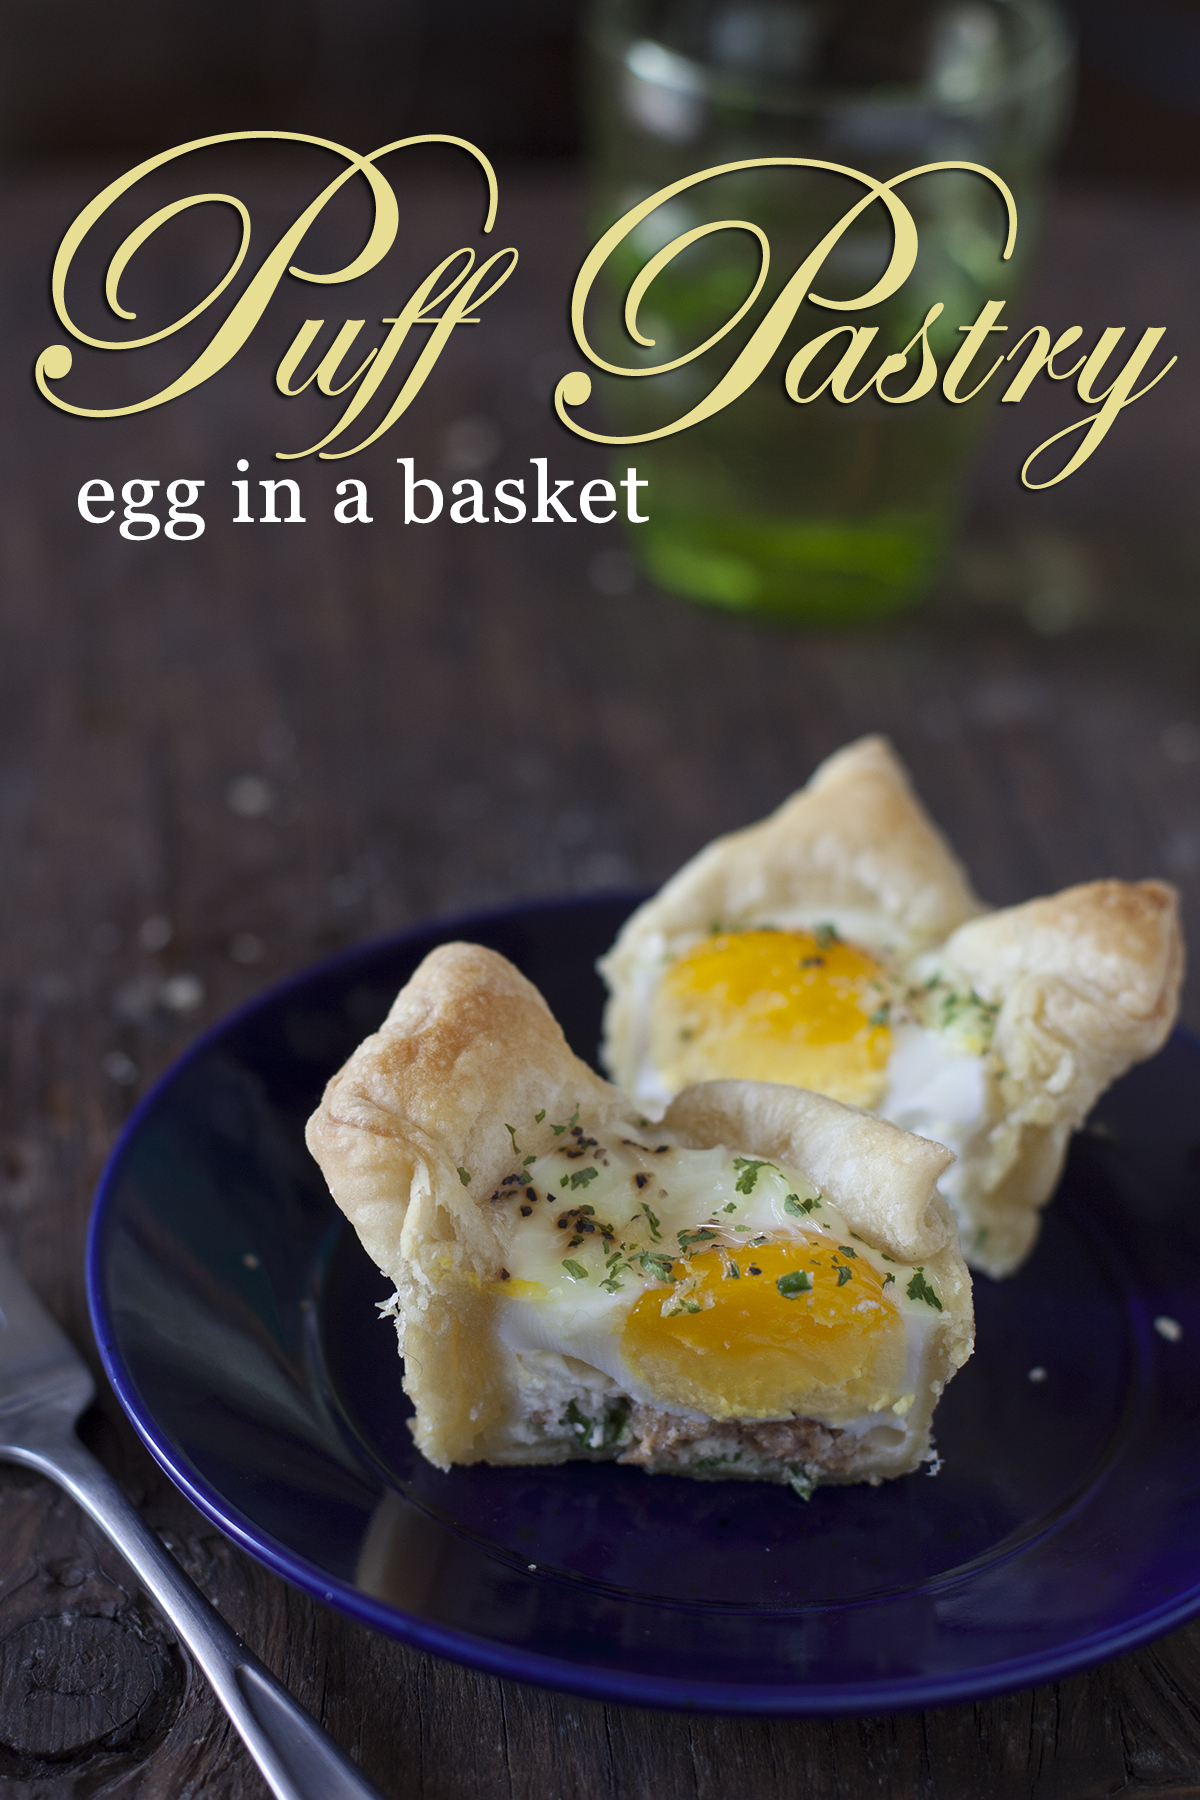 Puff Pastry Egg in a Basket Recipe